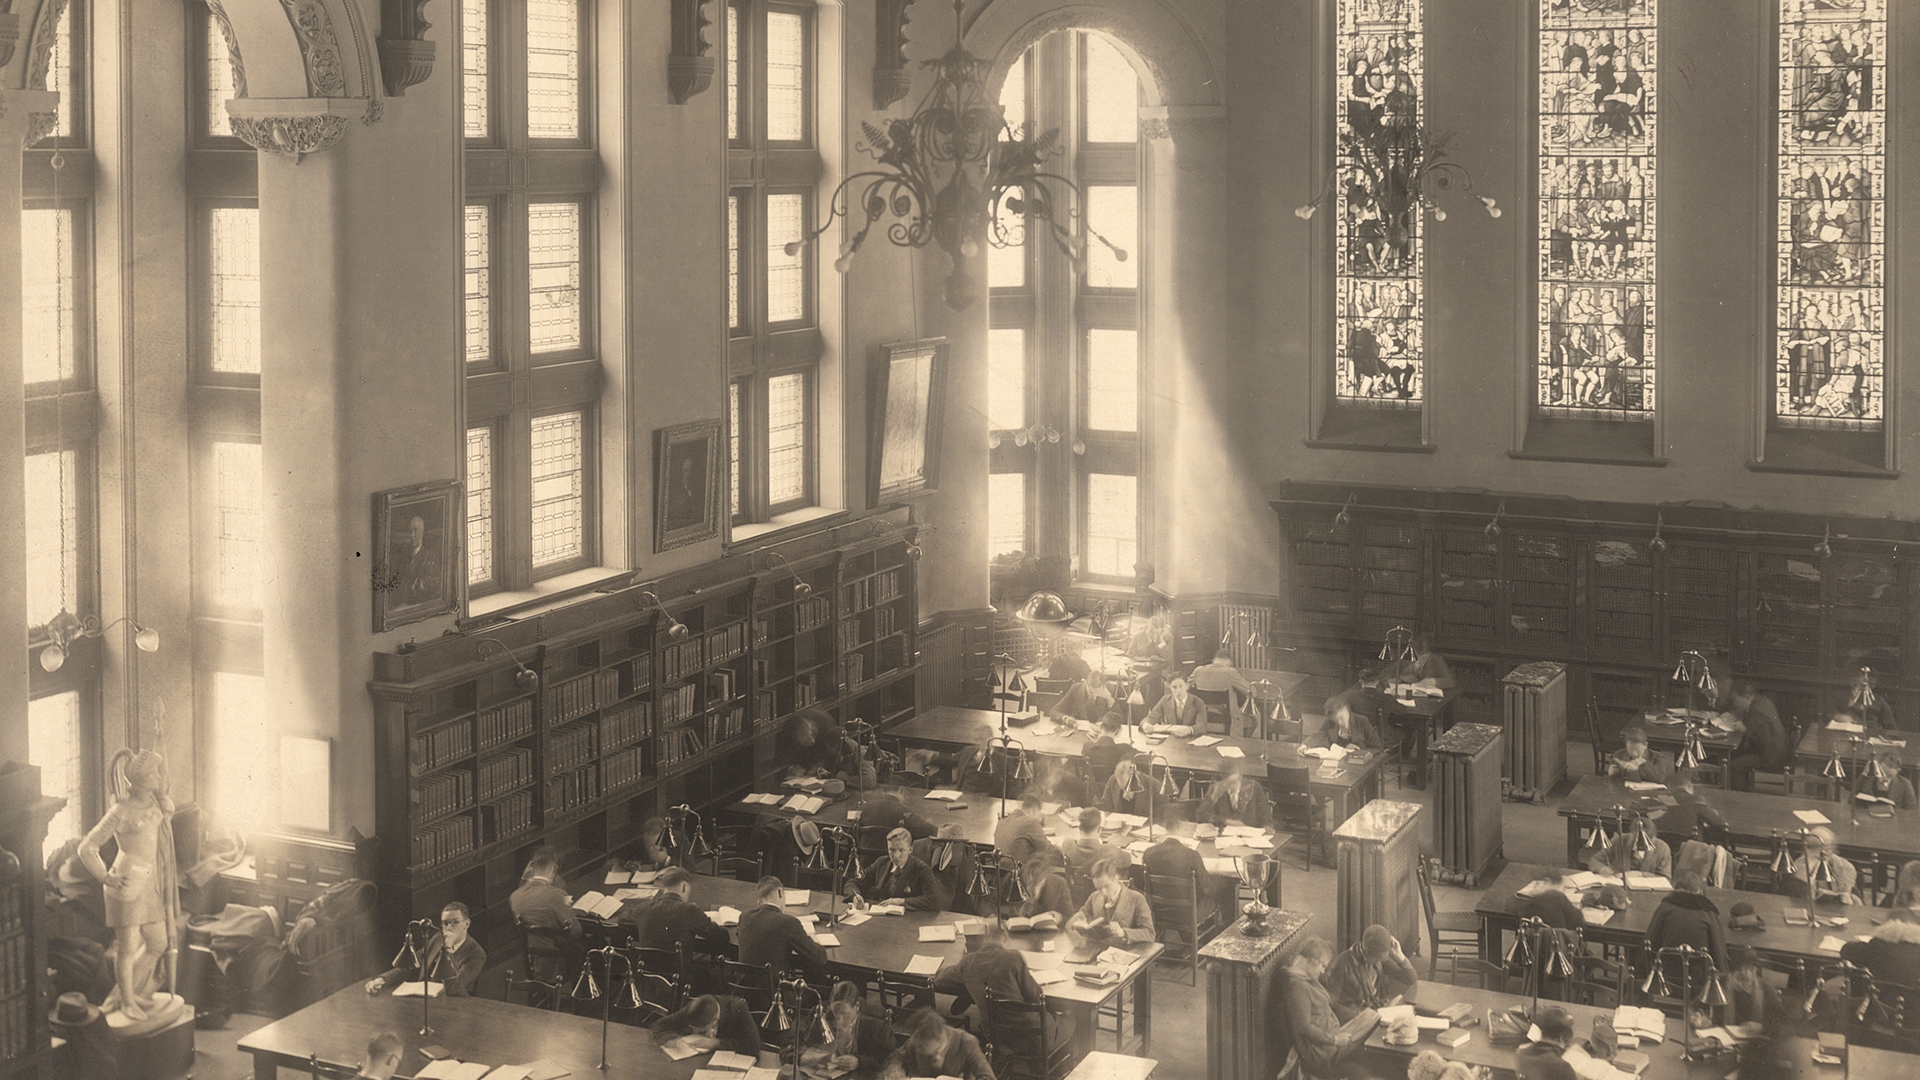 Interior Redpath Library with Students in Reading Room. E. Luter, 1927. Photomechanical print. PL043654, McGill University Archives.